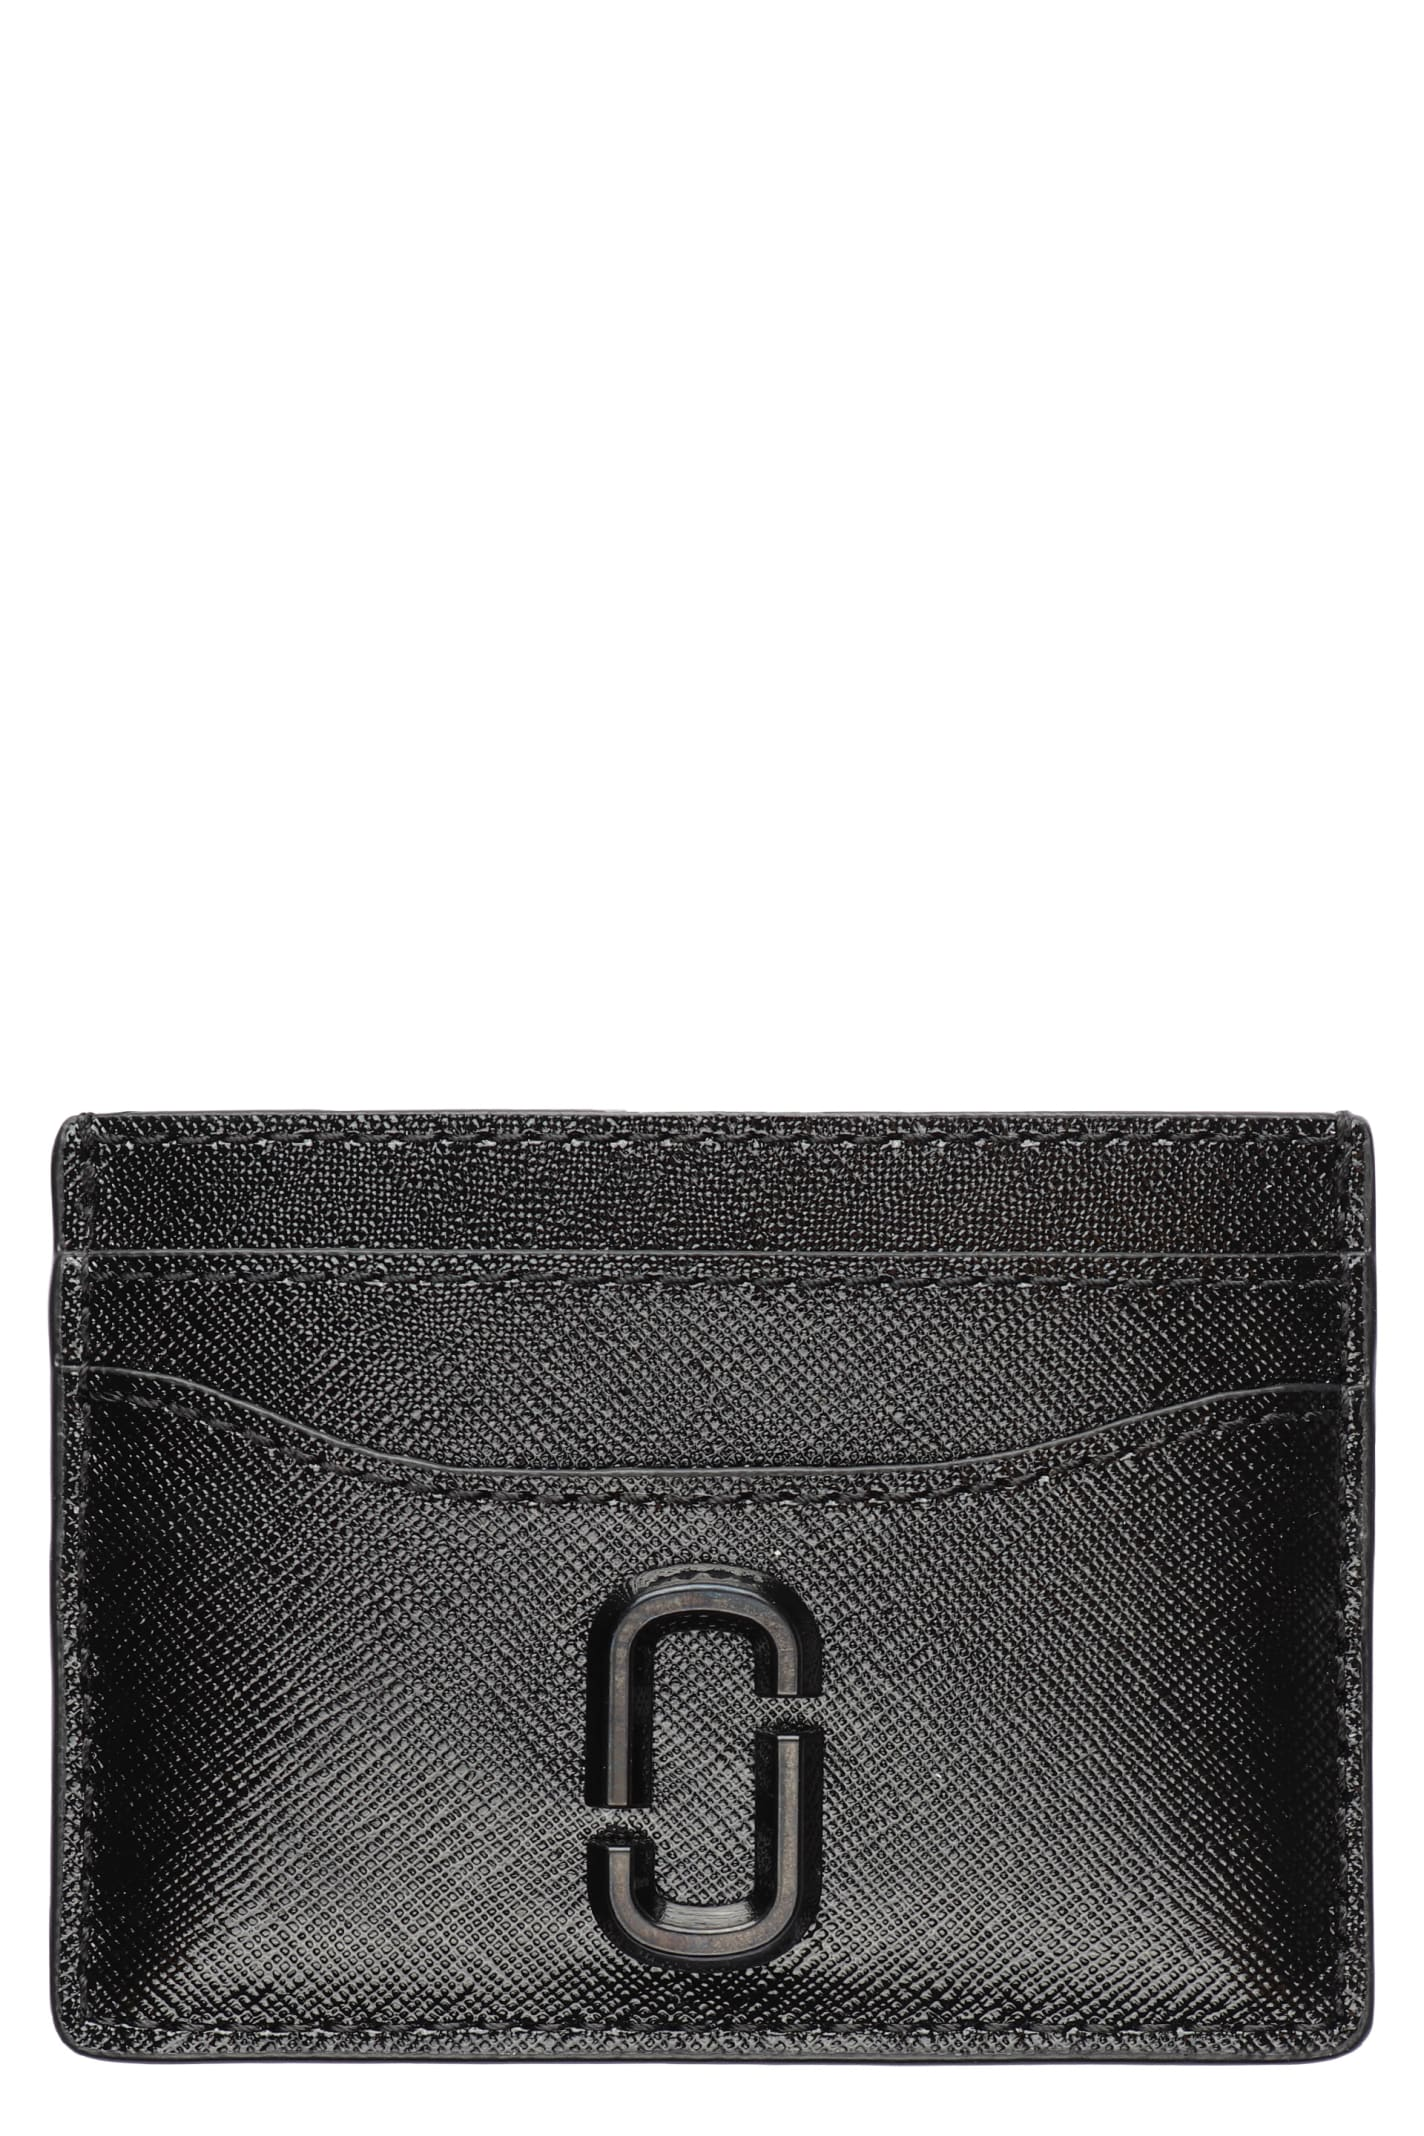 online store 4c0c1 2066c Marc Jacobs Snapshot Leather Card Holder